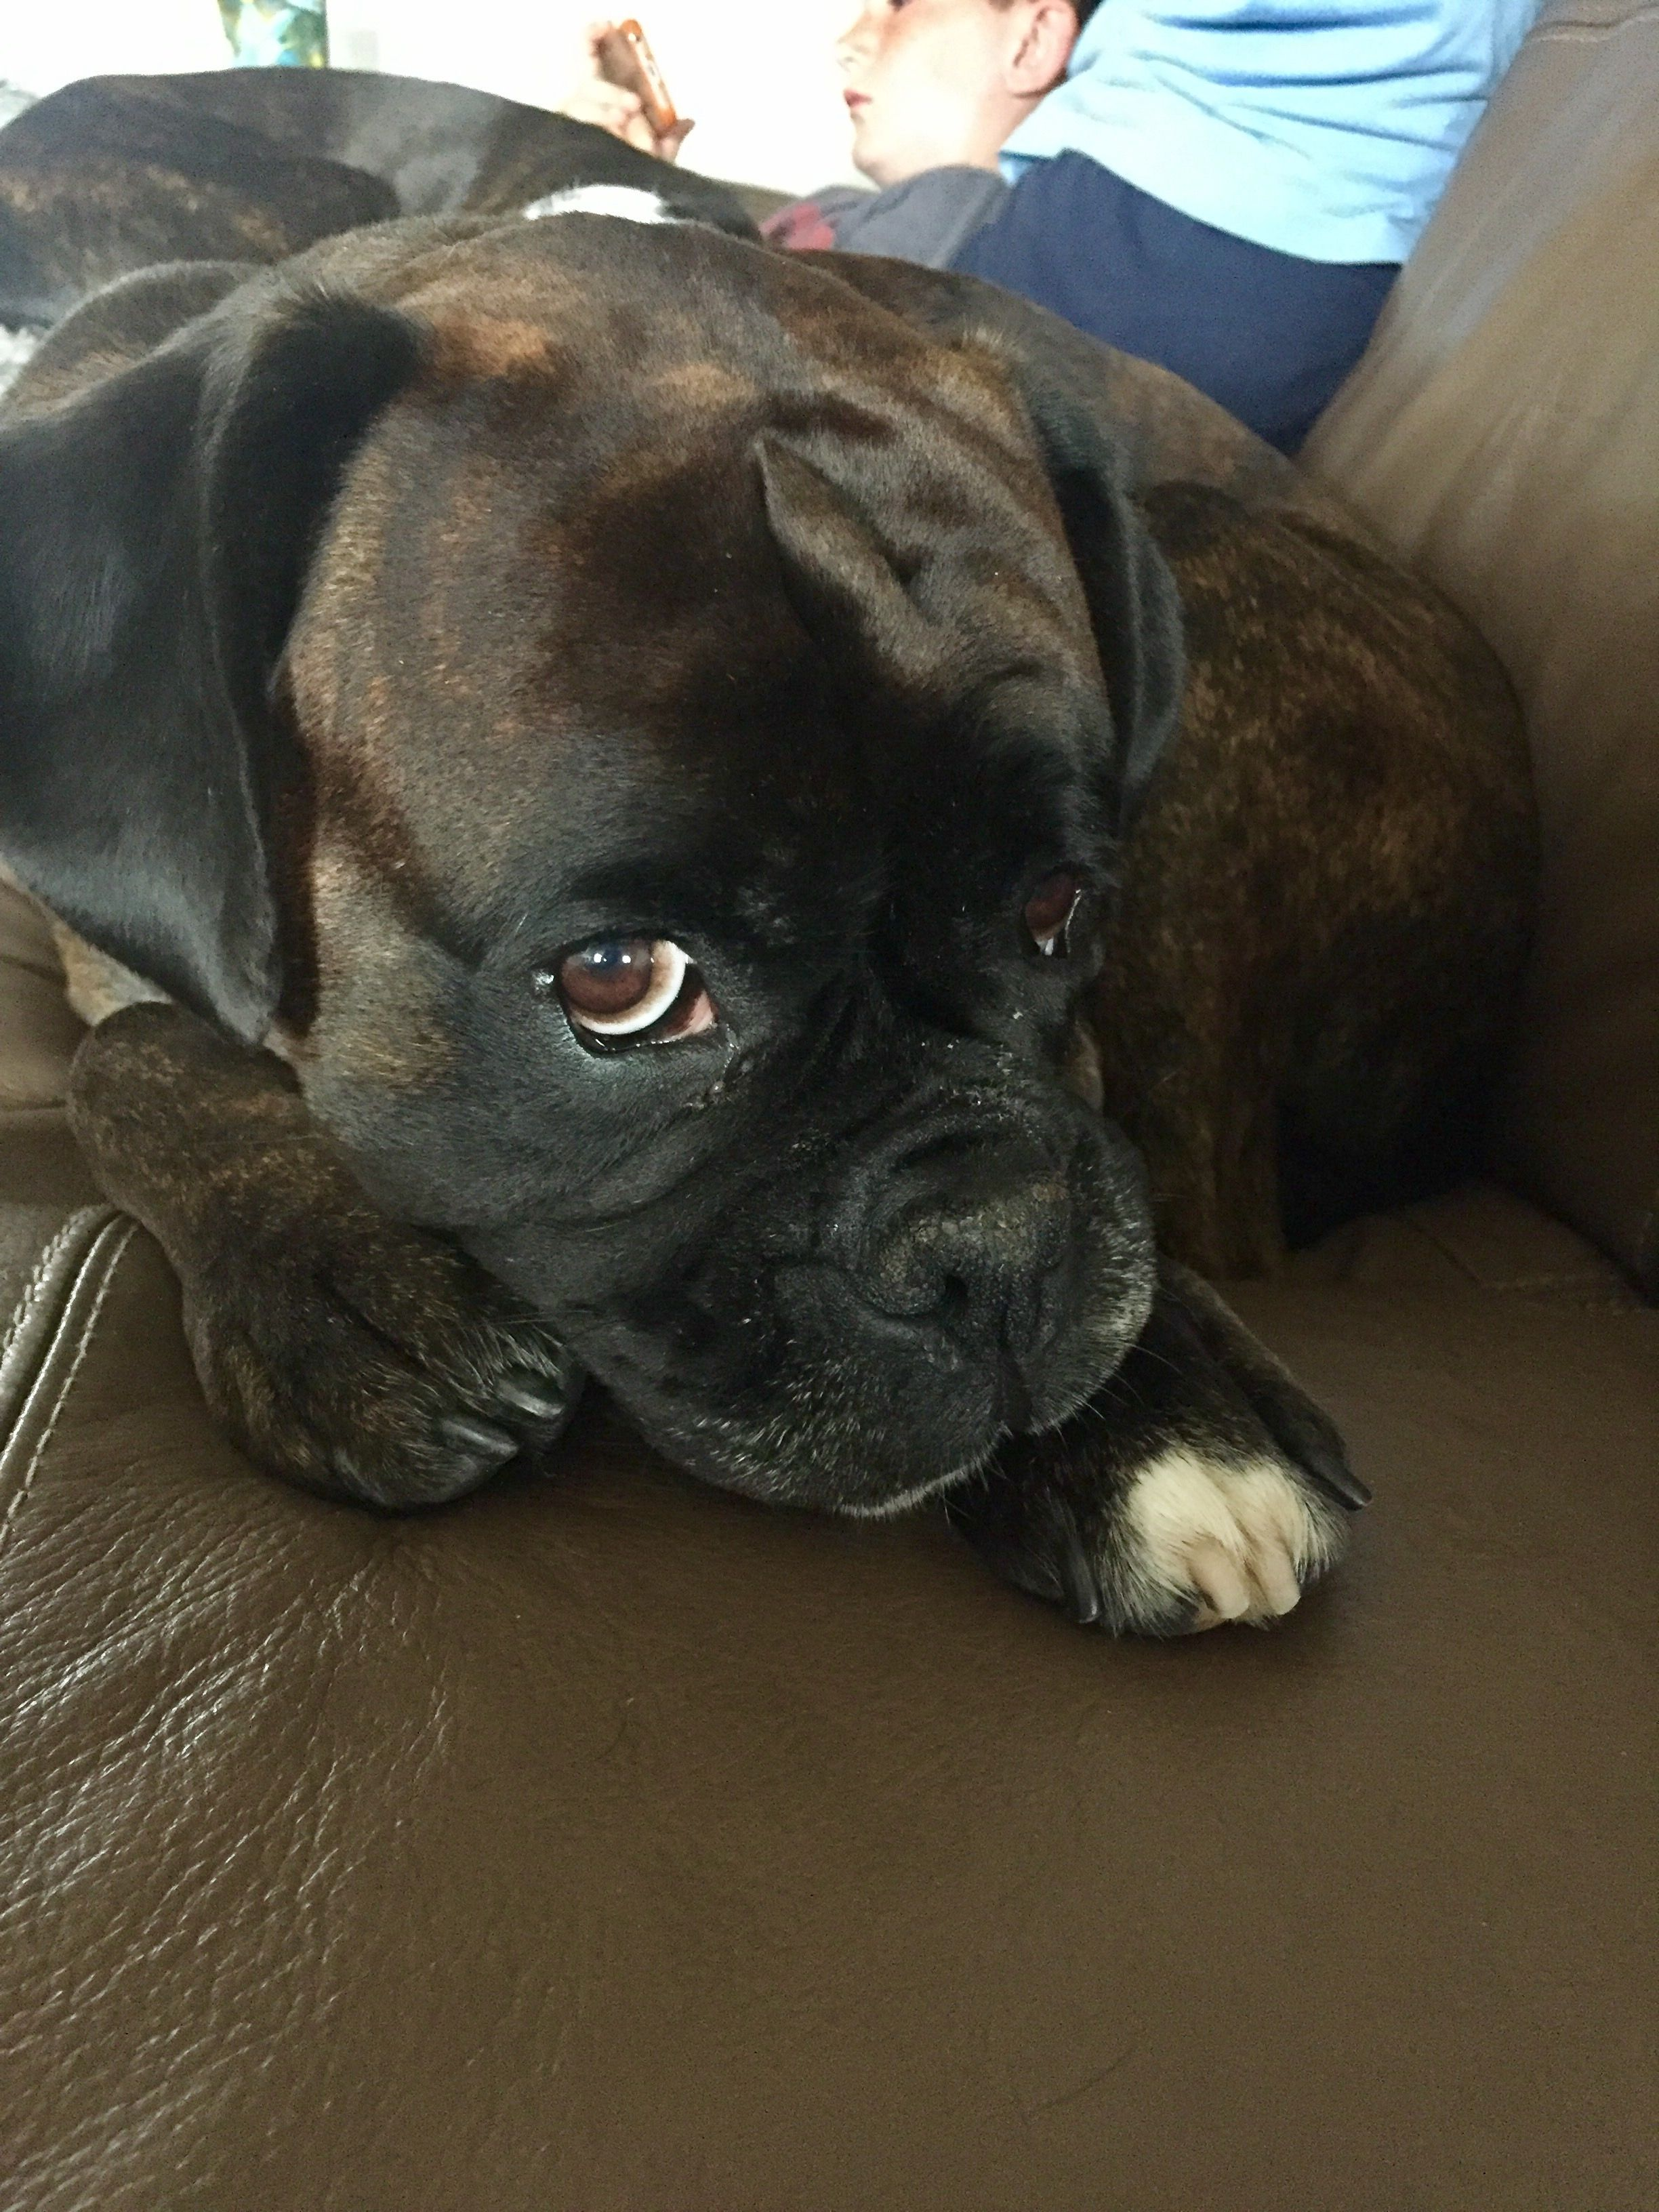 Pin By Dena Ford Johnson On Boxers Boxer Dogs Puppy Dog Eyes Dogs